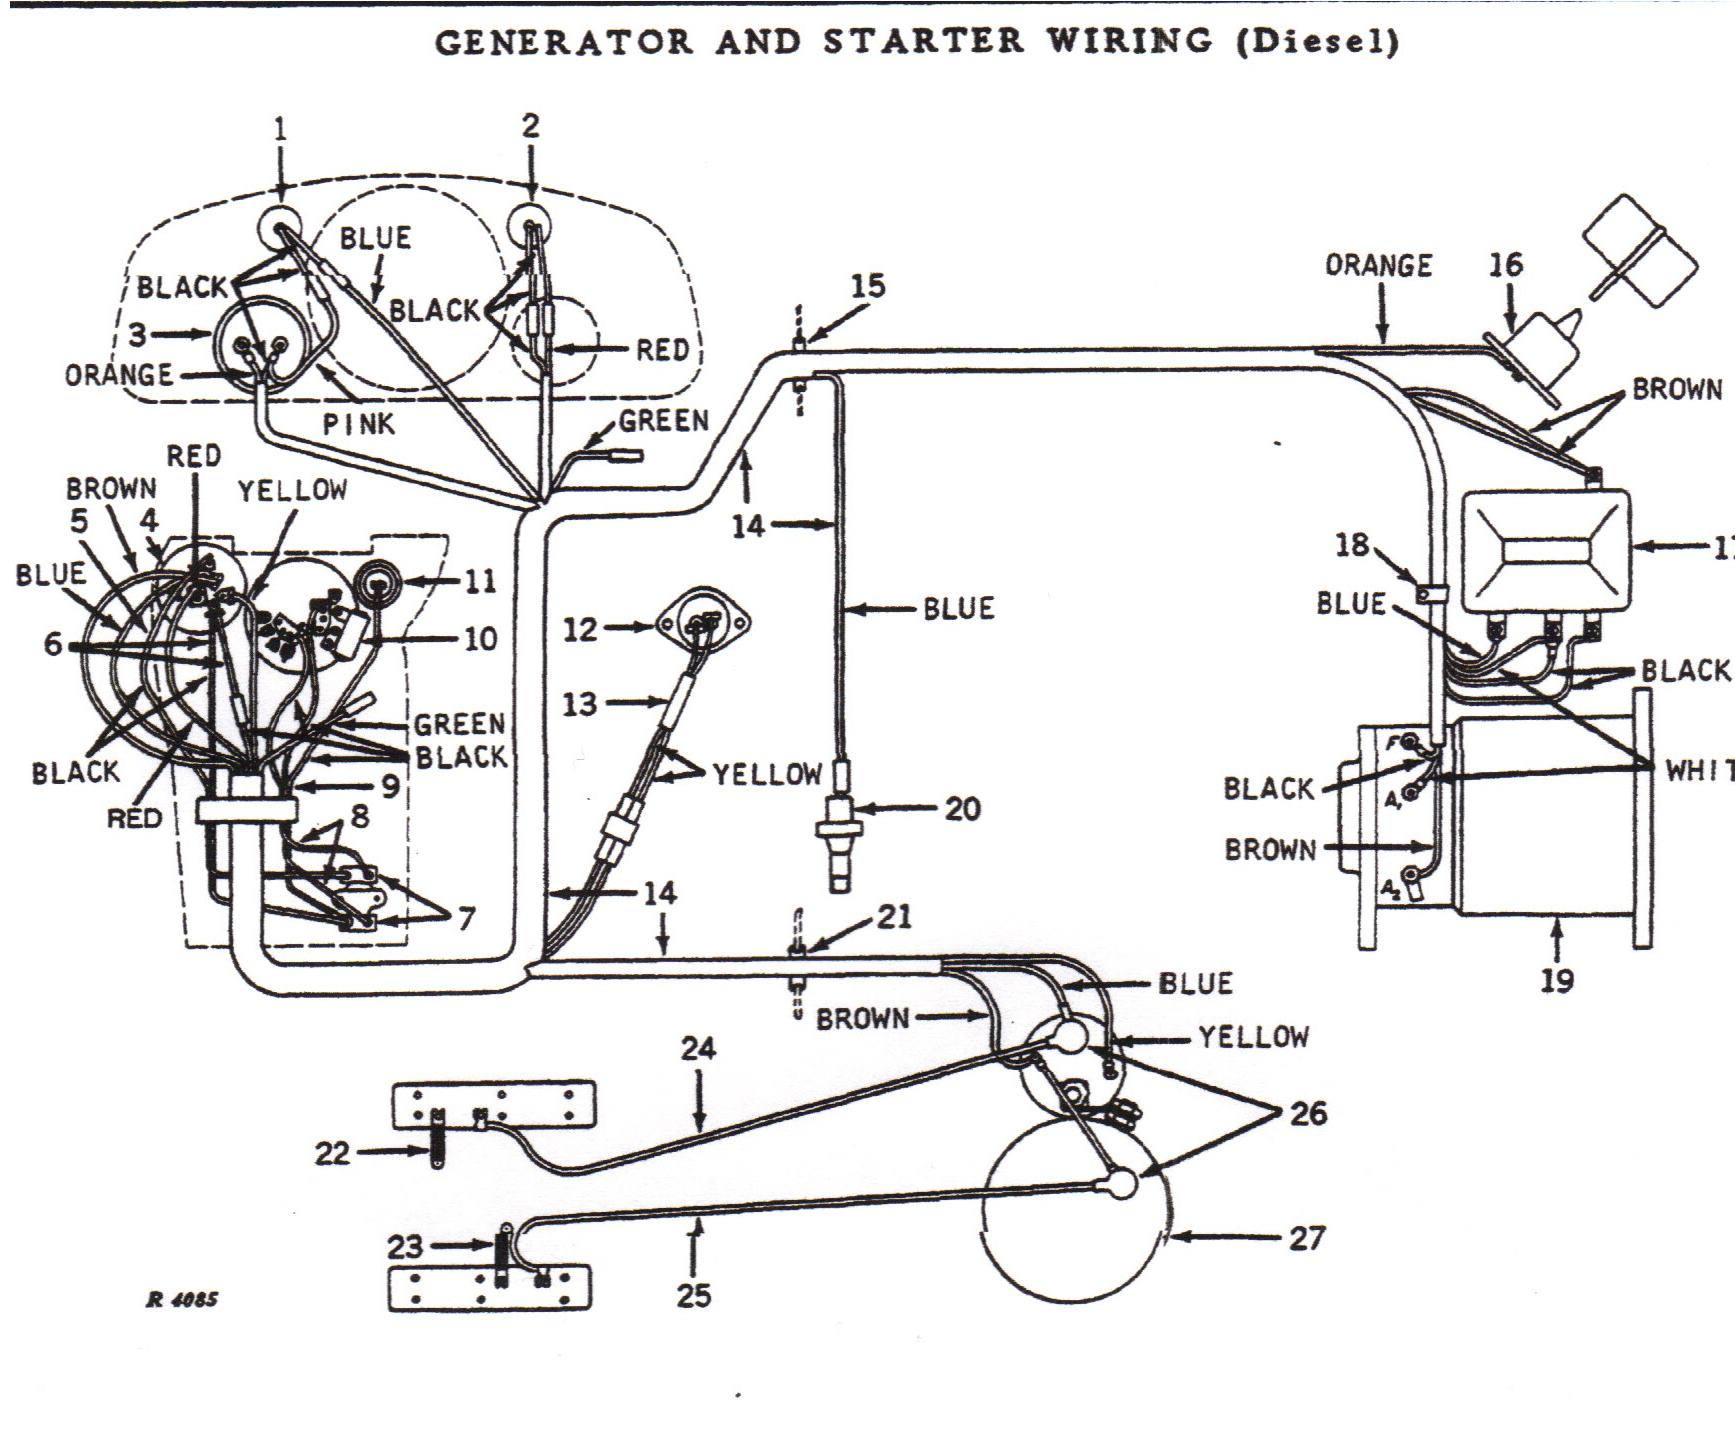 Wiring Diagram John Deere 4020 Powershift Books Of La165 What Is The Correct On Starter For A 24volt With Rh Justanswer Com